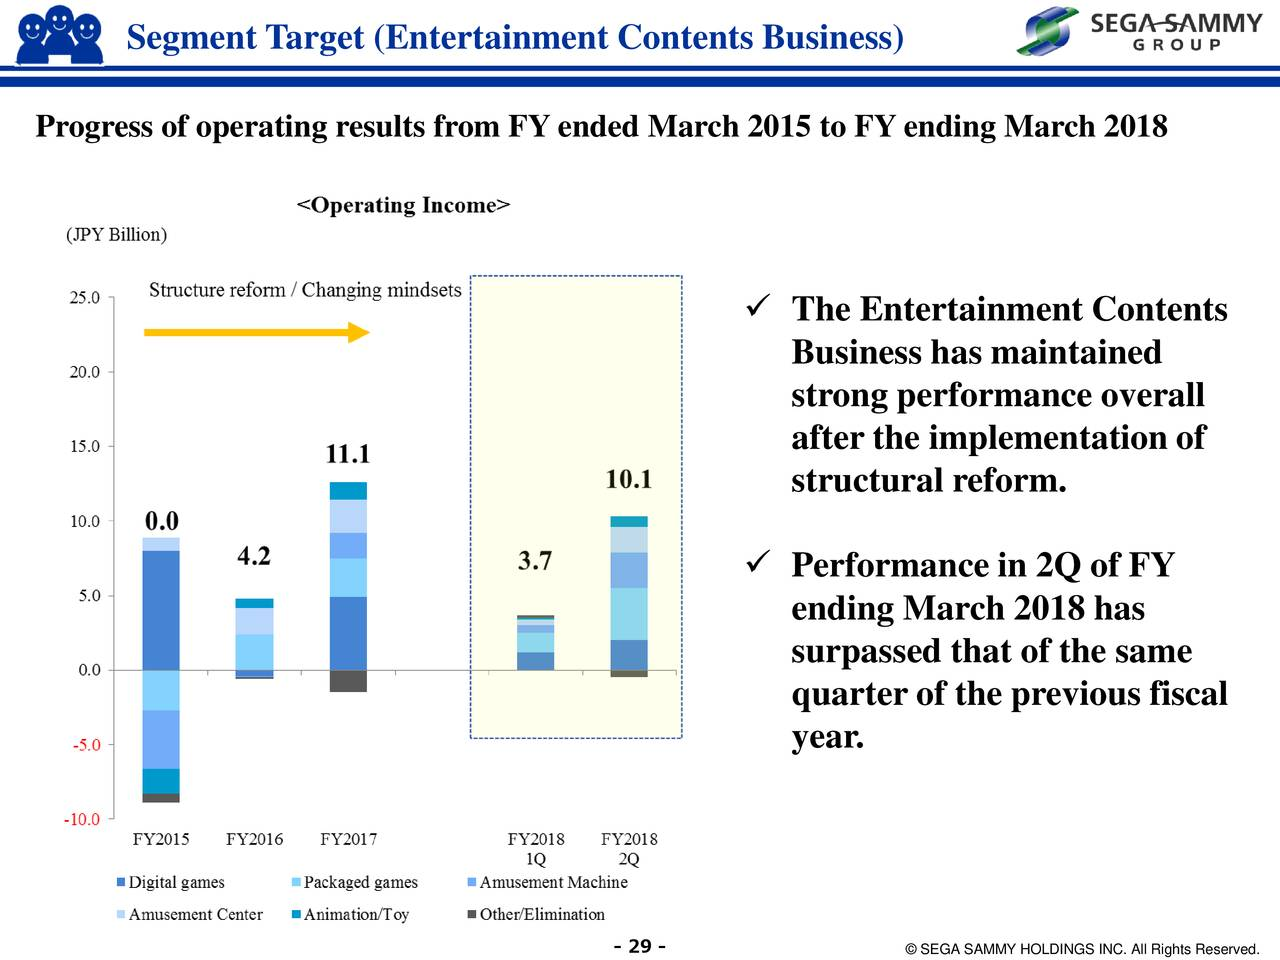 sega sammy business analysis The sega sammy group is an entertainment company engaged in the following fundamental areas: the pachislot and pachinko machine business, resort business, entertainment contents business and other sega sammy holdings inc.